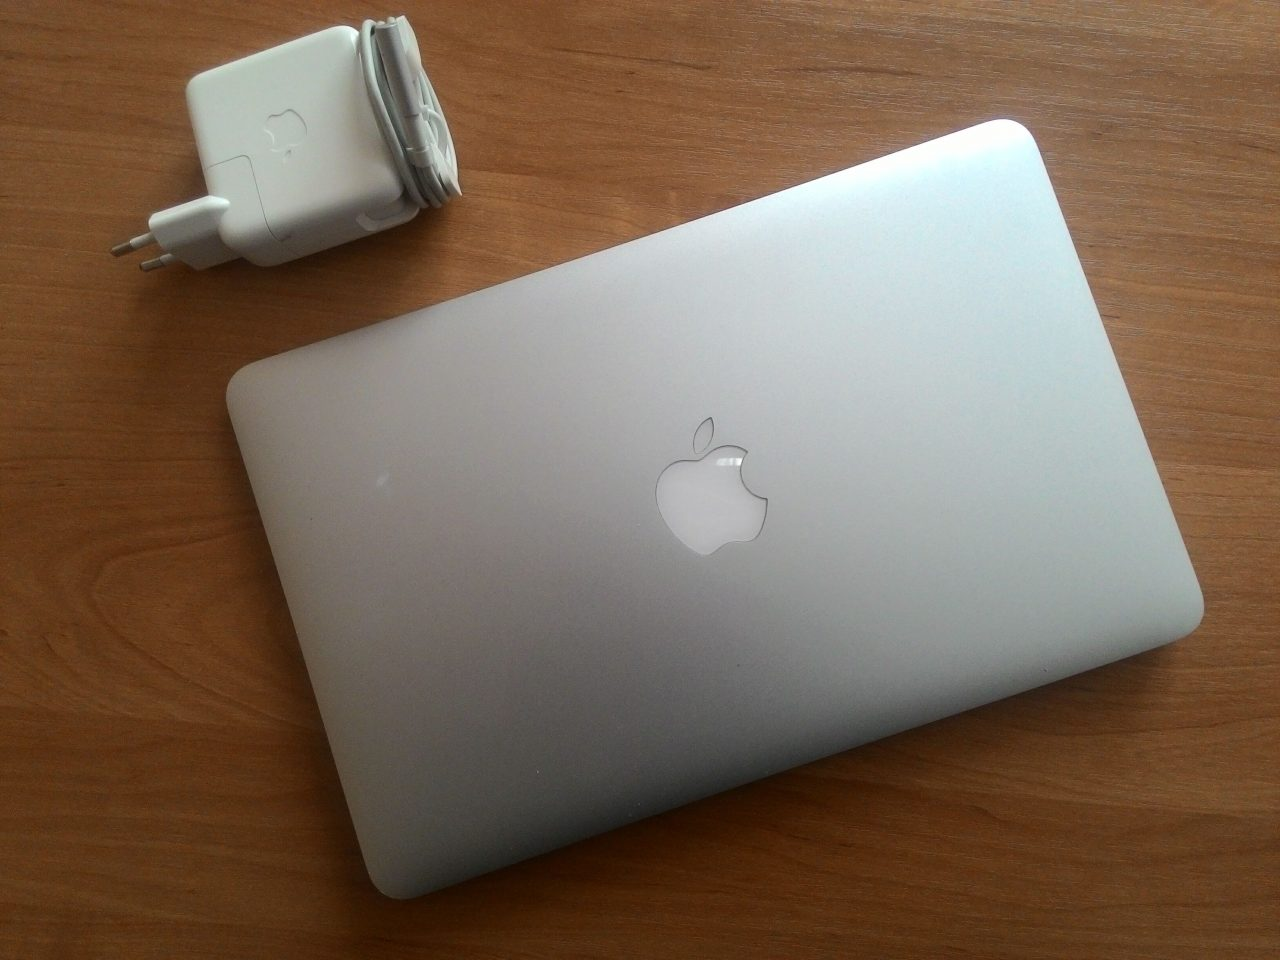 Ремонт Apple Mac book